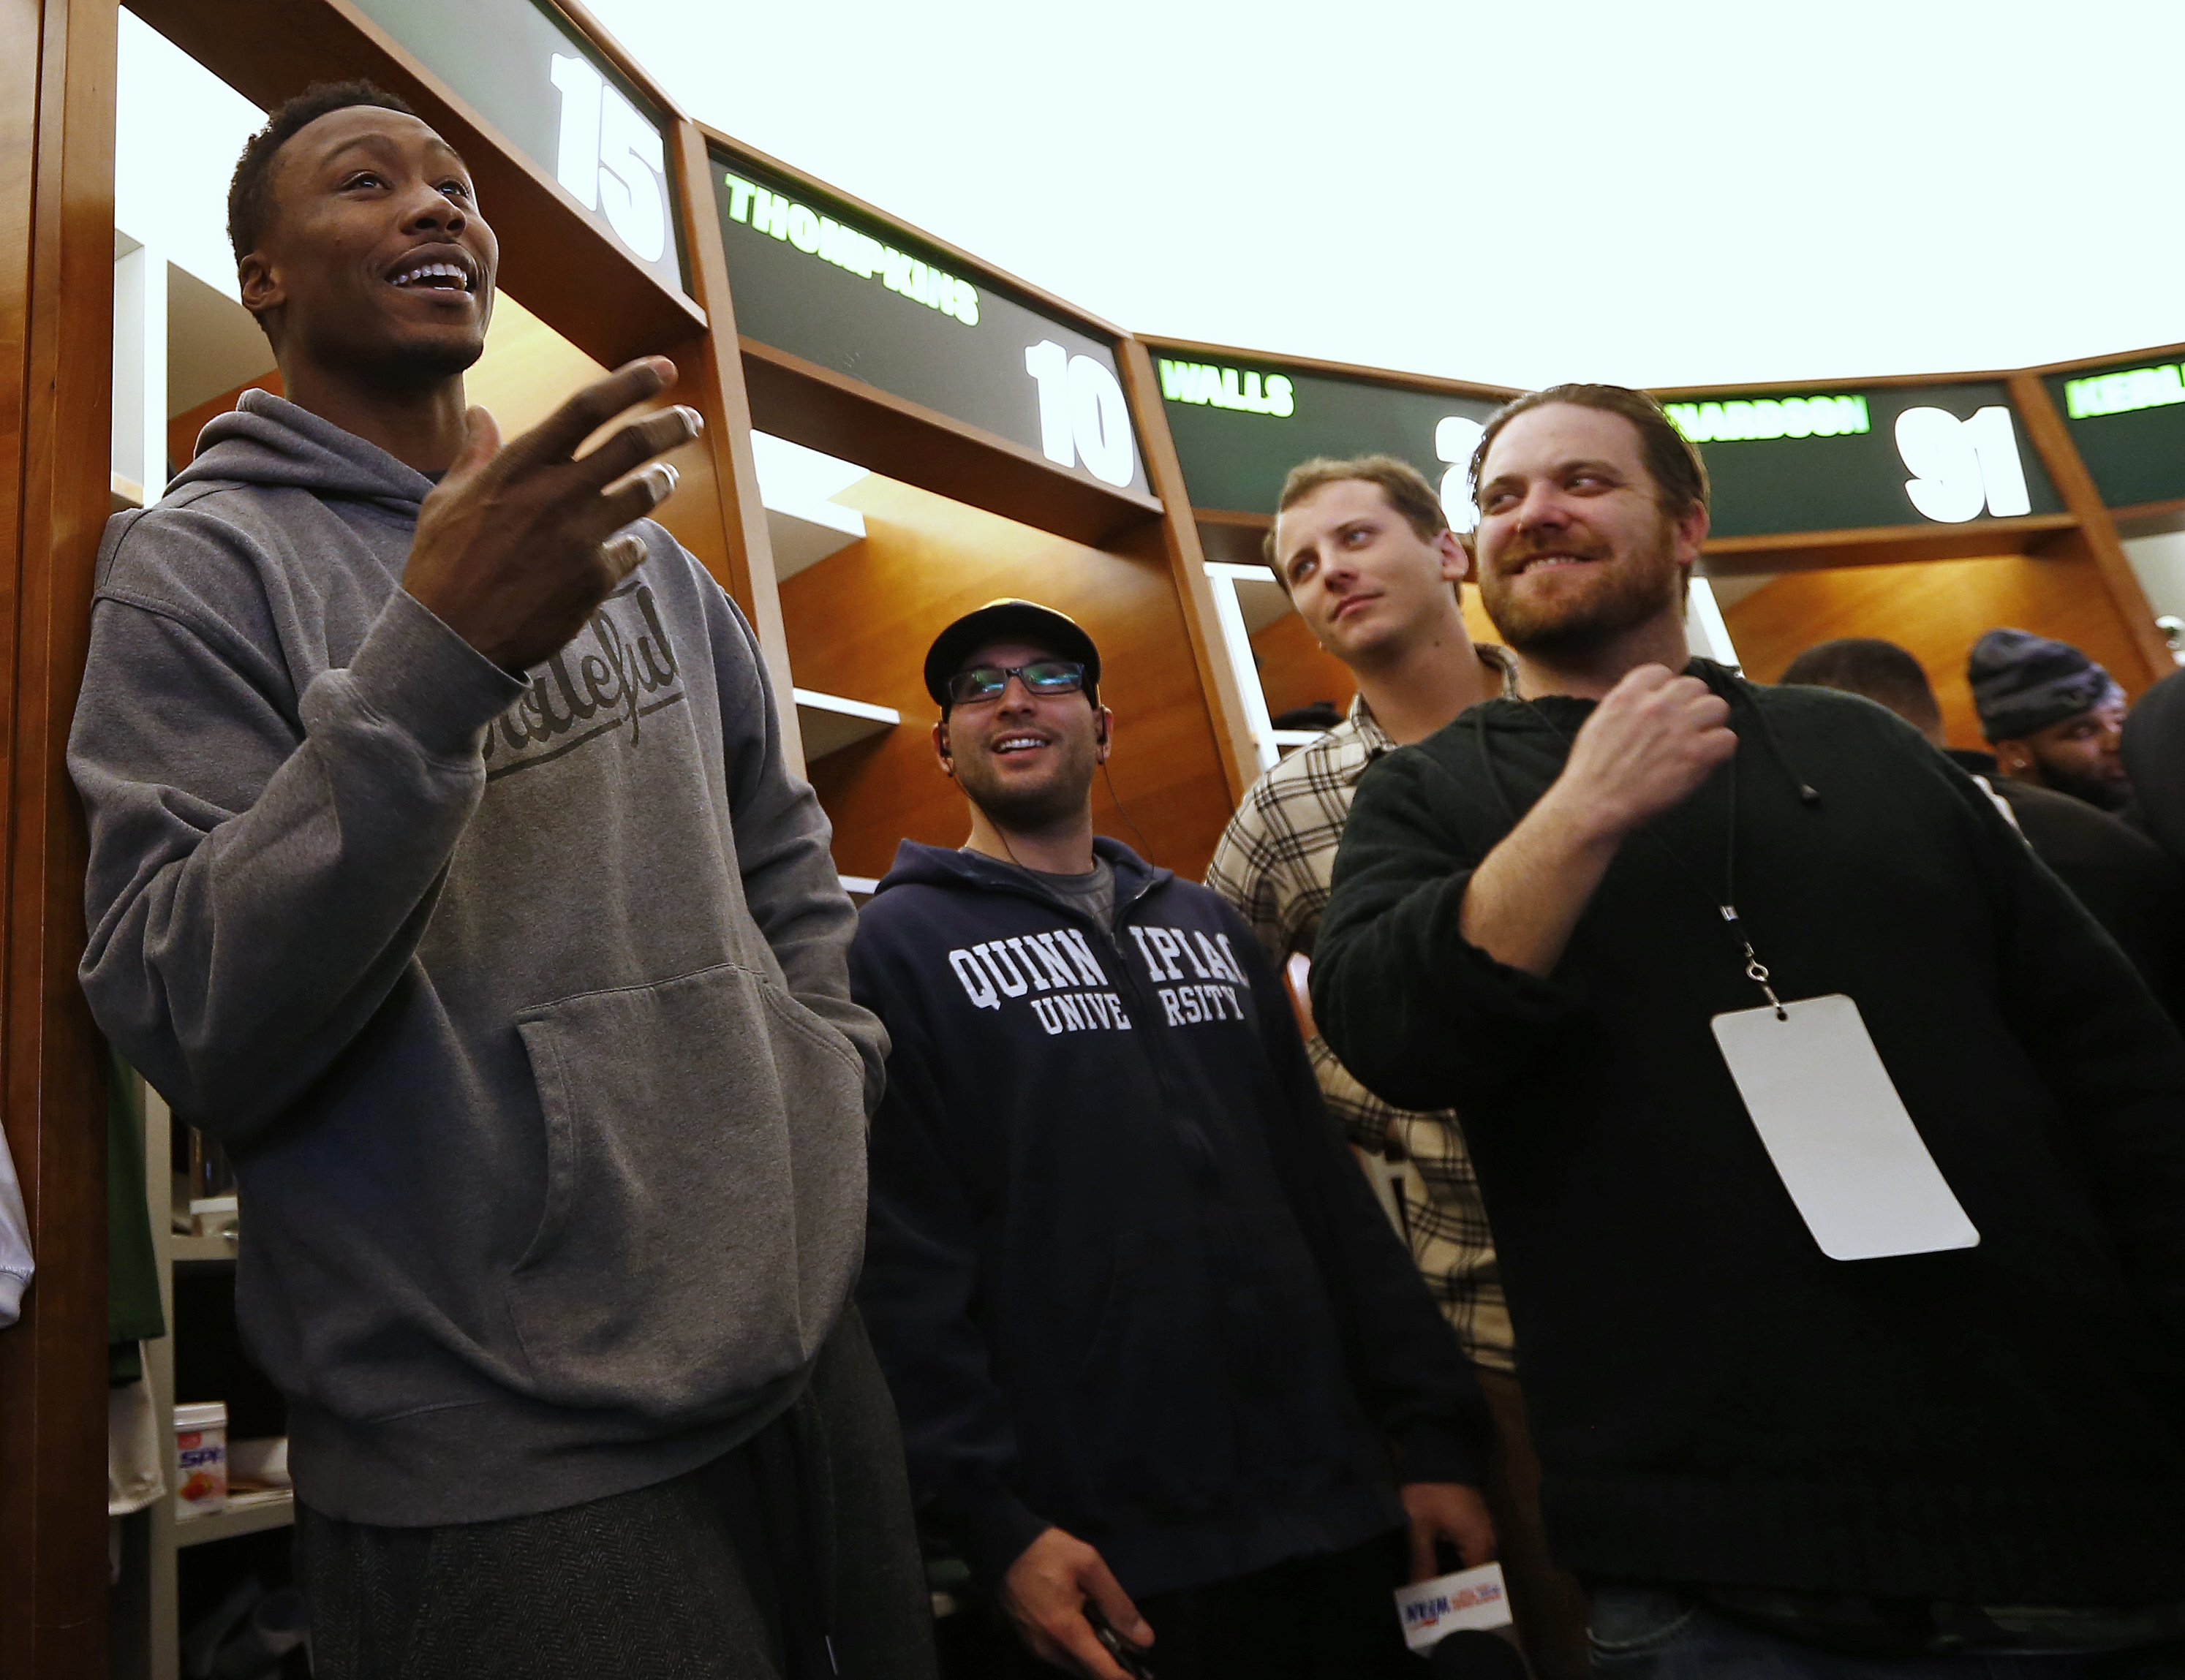 New York Jets wide receiver Brandon Marshall talks to the media as the team clears out their lockers at the team's NFL football training facility, Monday, Jan. 4, 2016, in Florham Park, N.J. (AP Photo/Rich Schultz)